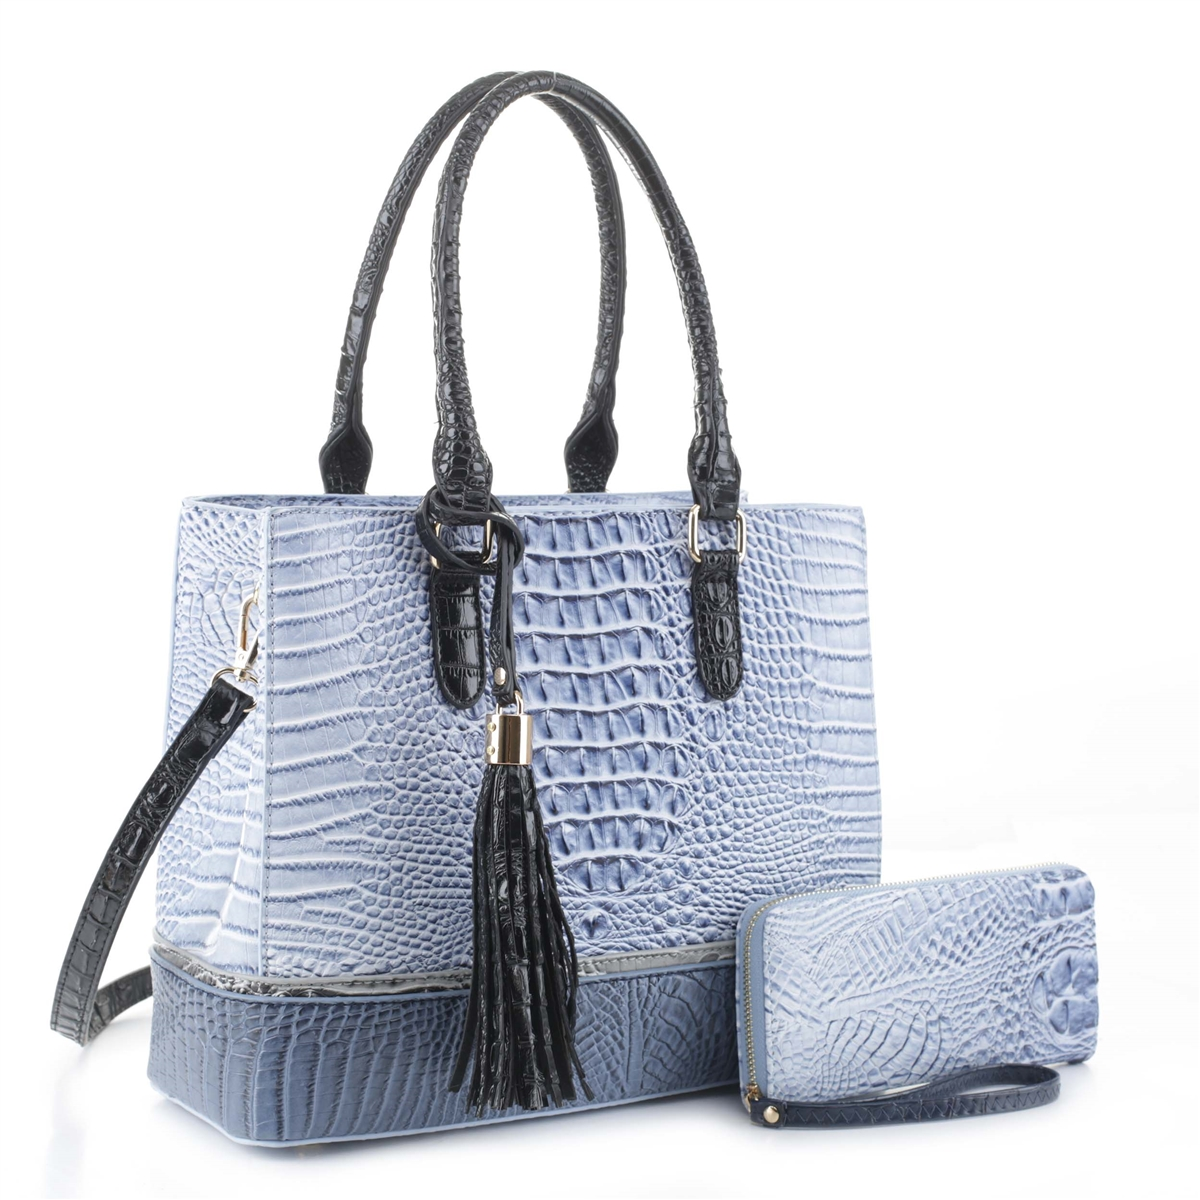 Dubatti One 3-Piece Set In Real Lambs Leather in the Plain or Quilted Style /& Free Set of Bag Hooks